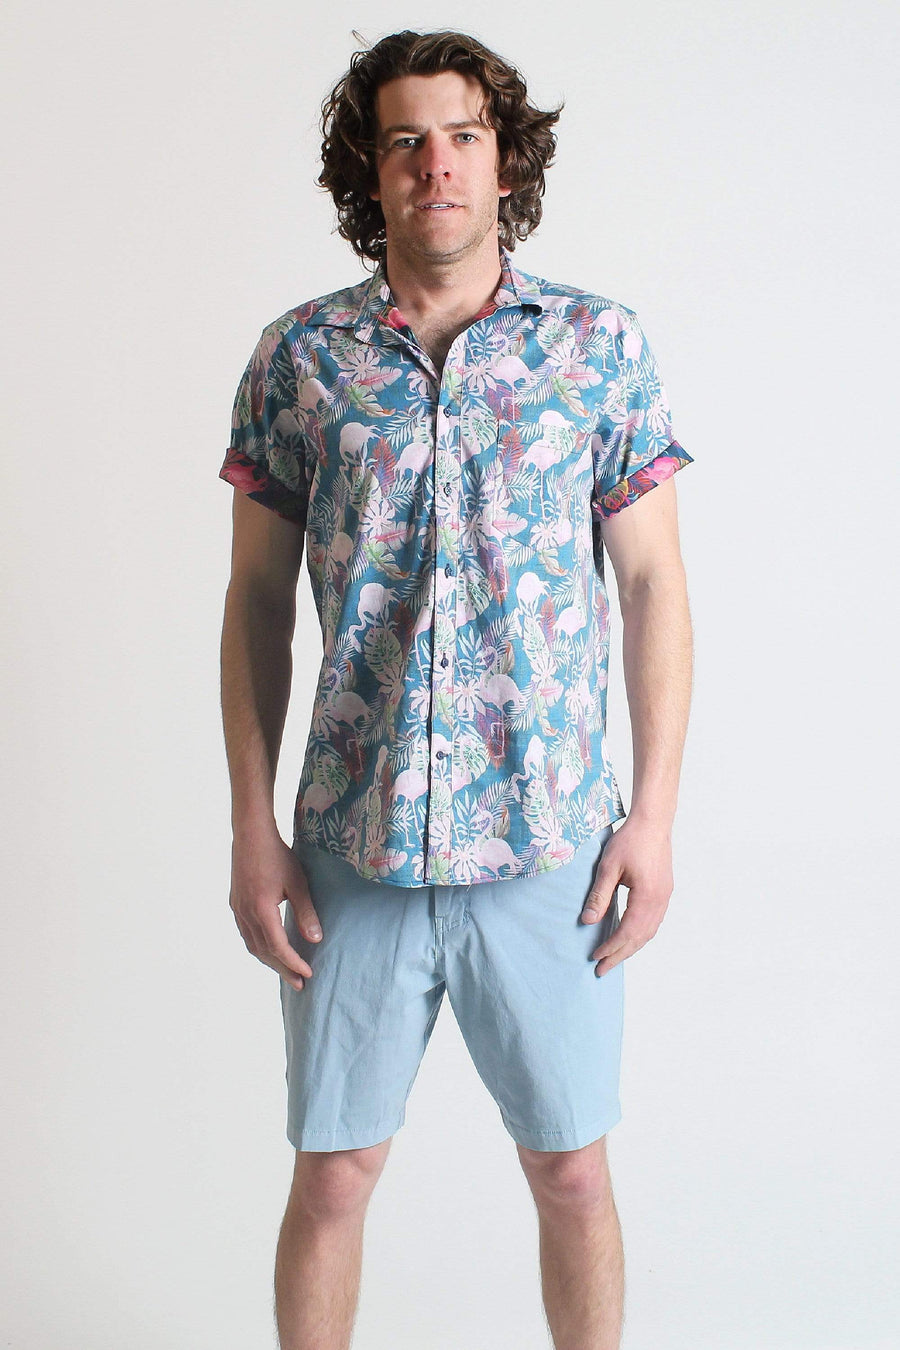 QSSS/YIWU GEN-Men's NAVY / S Flamingo Ferns Button Down